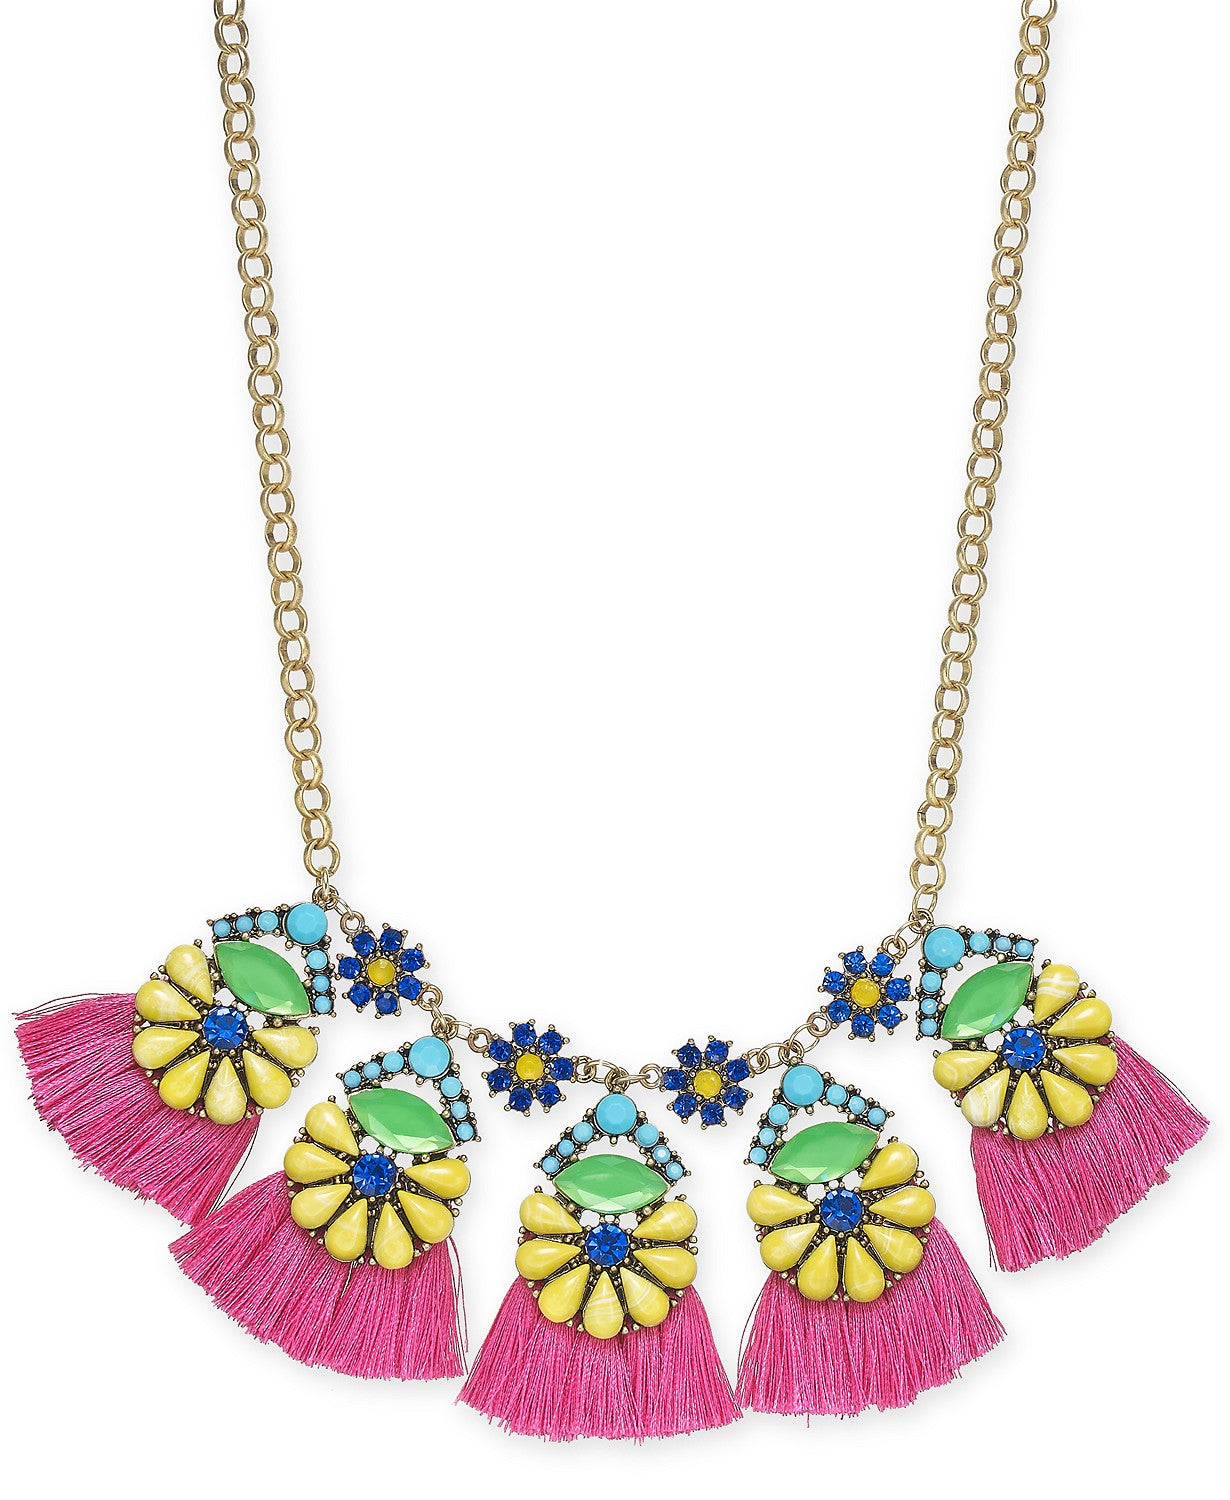 "I.N.C. Gold-Tone Multicolor Bead Flower & Tassel Statement Necklace, 18"" + 3"" extender"